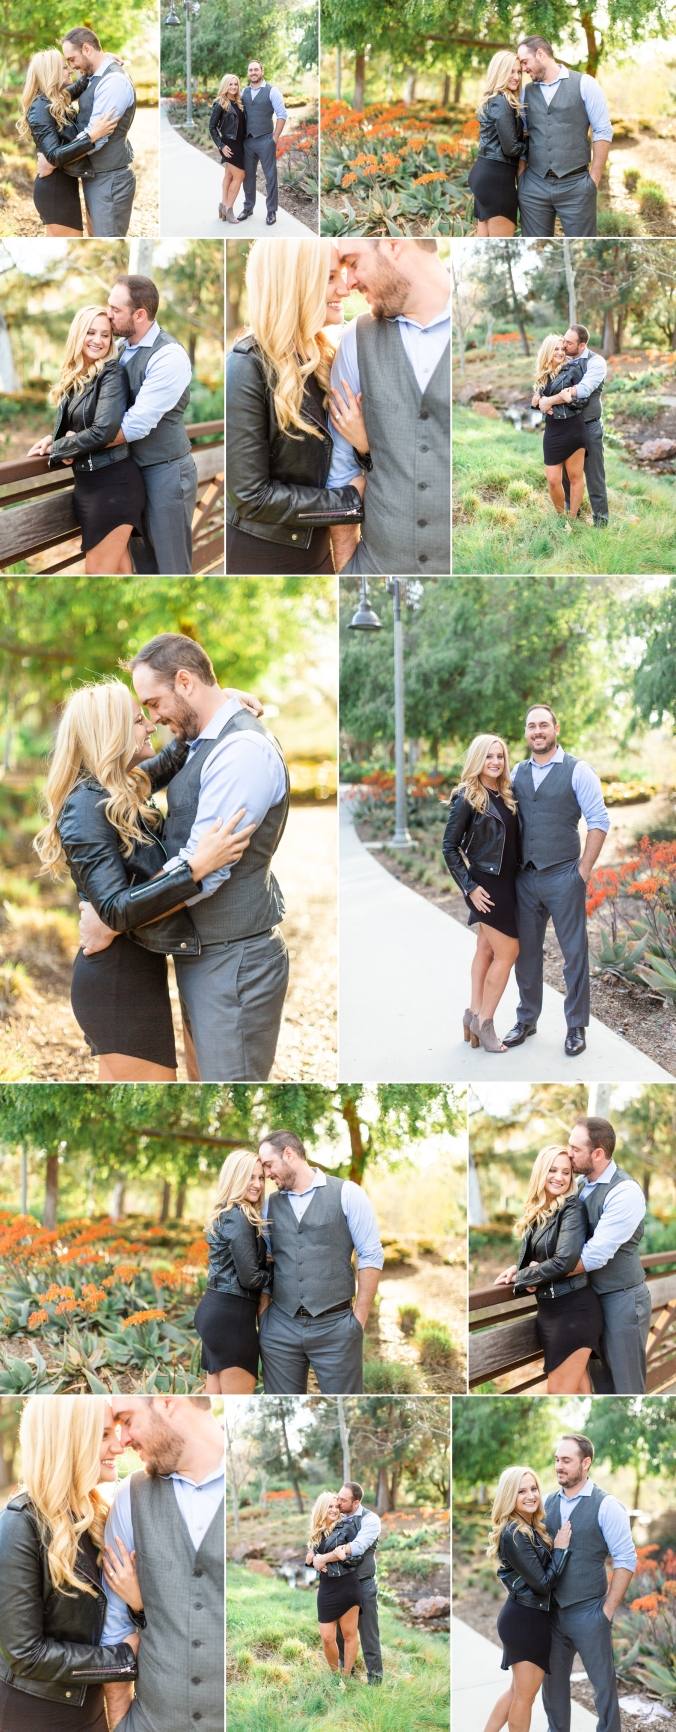 affordable-wedding-photography-orange-county-thomas-f-riley-engagement-photos-shy-heart-studios-1.jpg